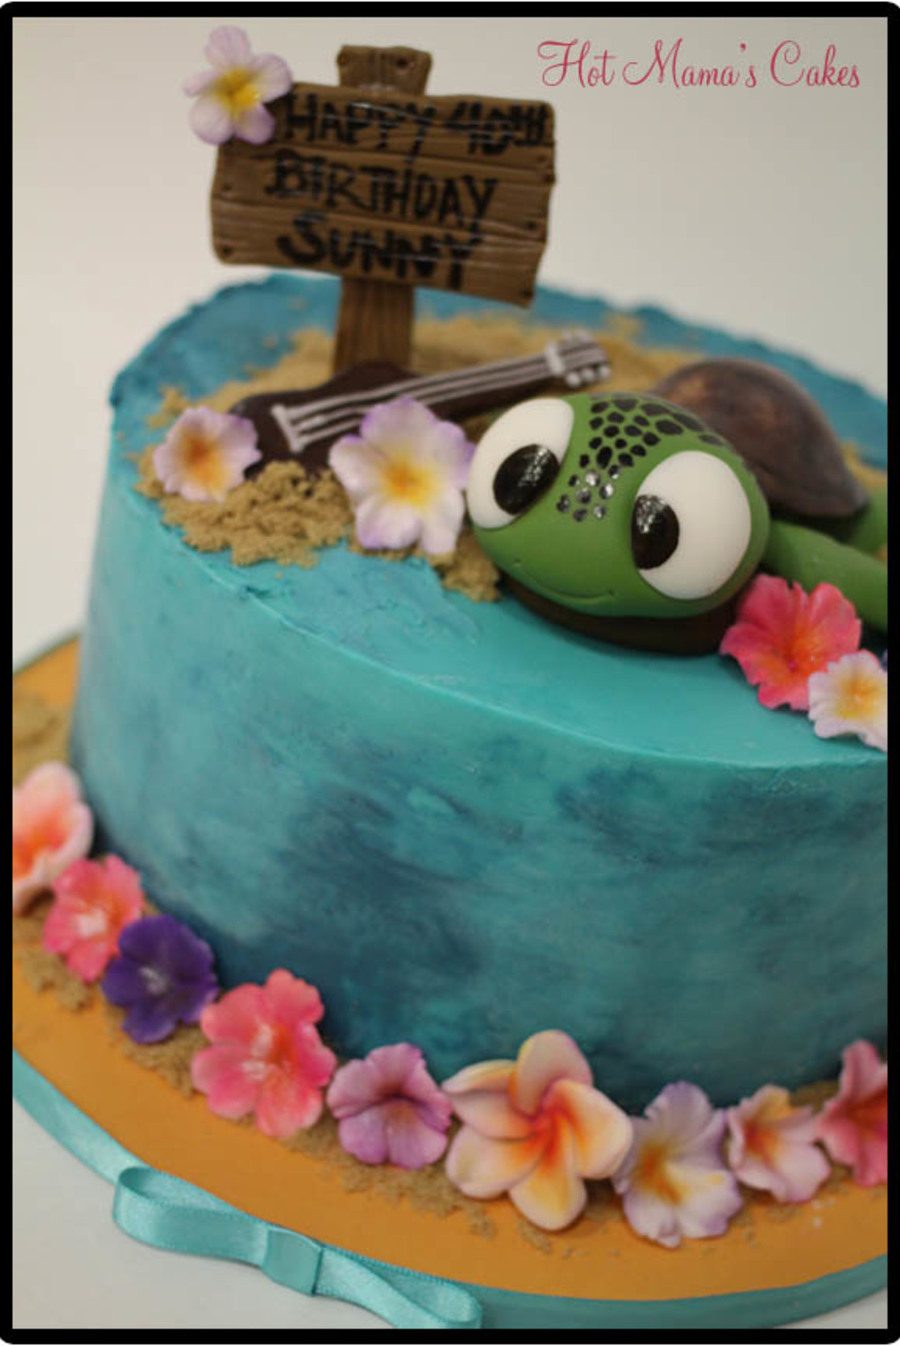 Surprising Hawaiian Themed Birthday Cake Cakecentral Com Personalised Birthday Cards Petedlily Jamesorg